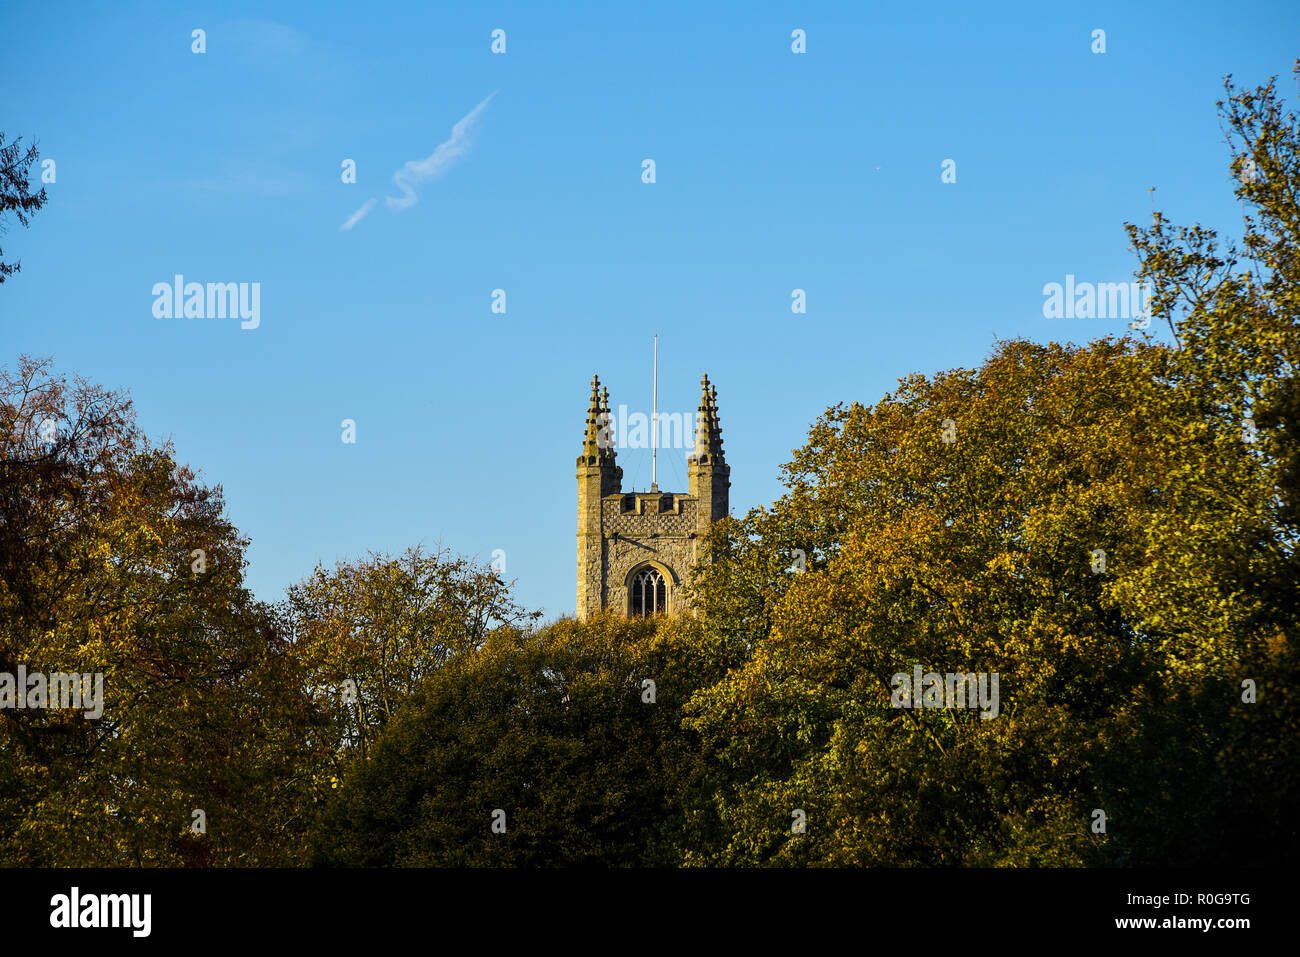 Church of Saint Mary the Virgin in Prittlewell the mother church of the growing borough of Southend. Early Autumn trees, fall colours. Space for copy Stock Photo